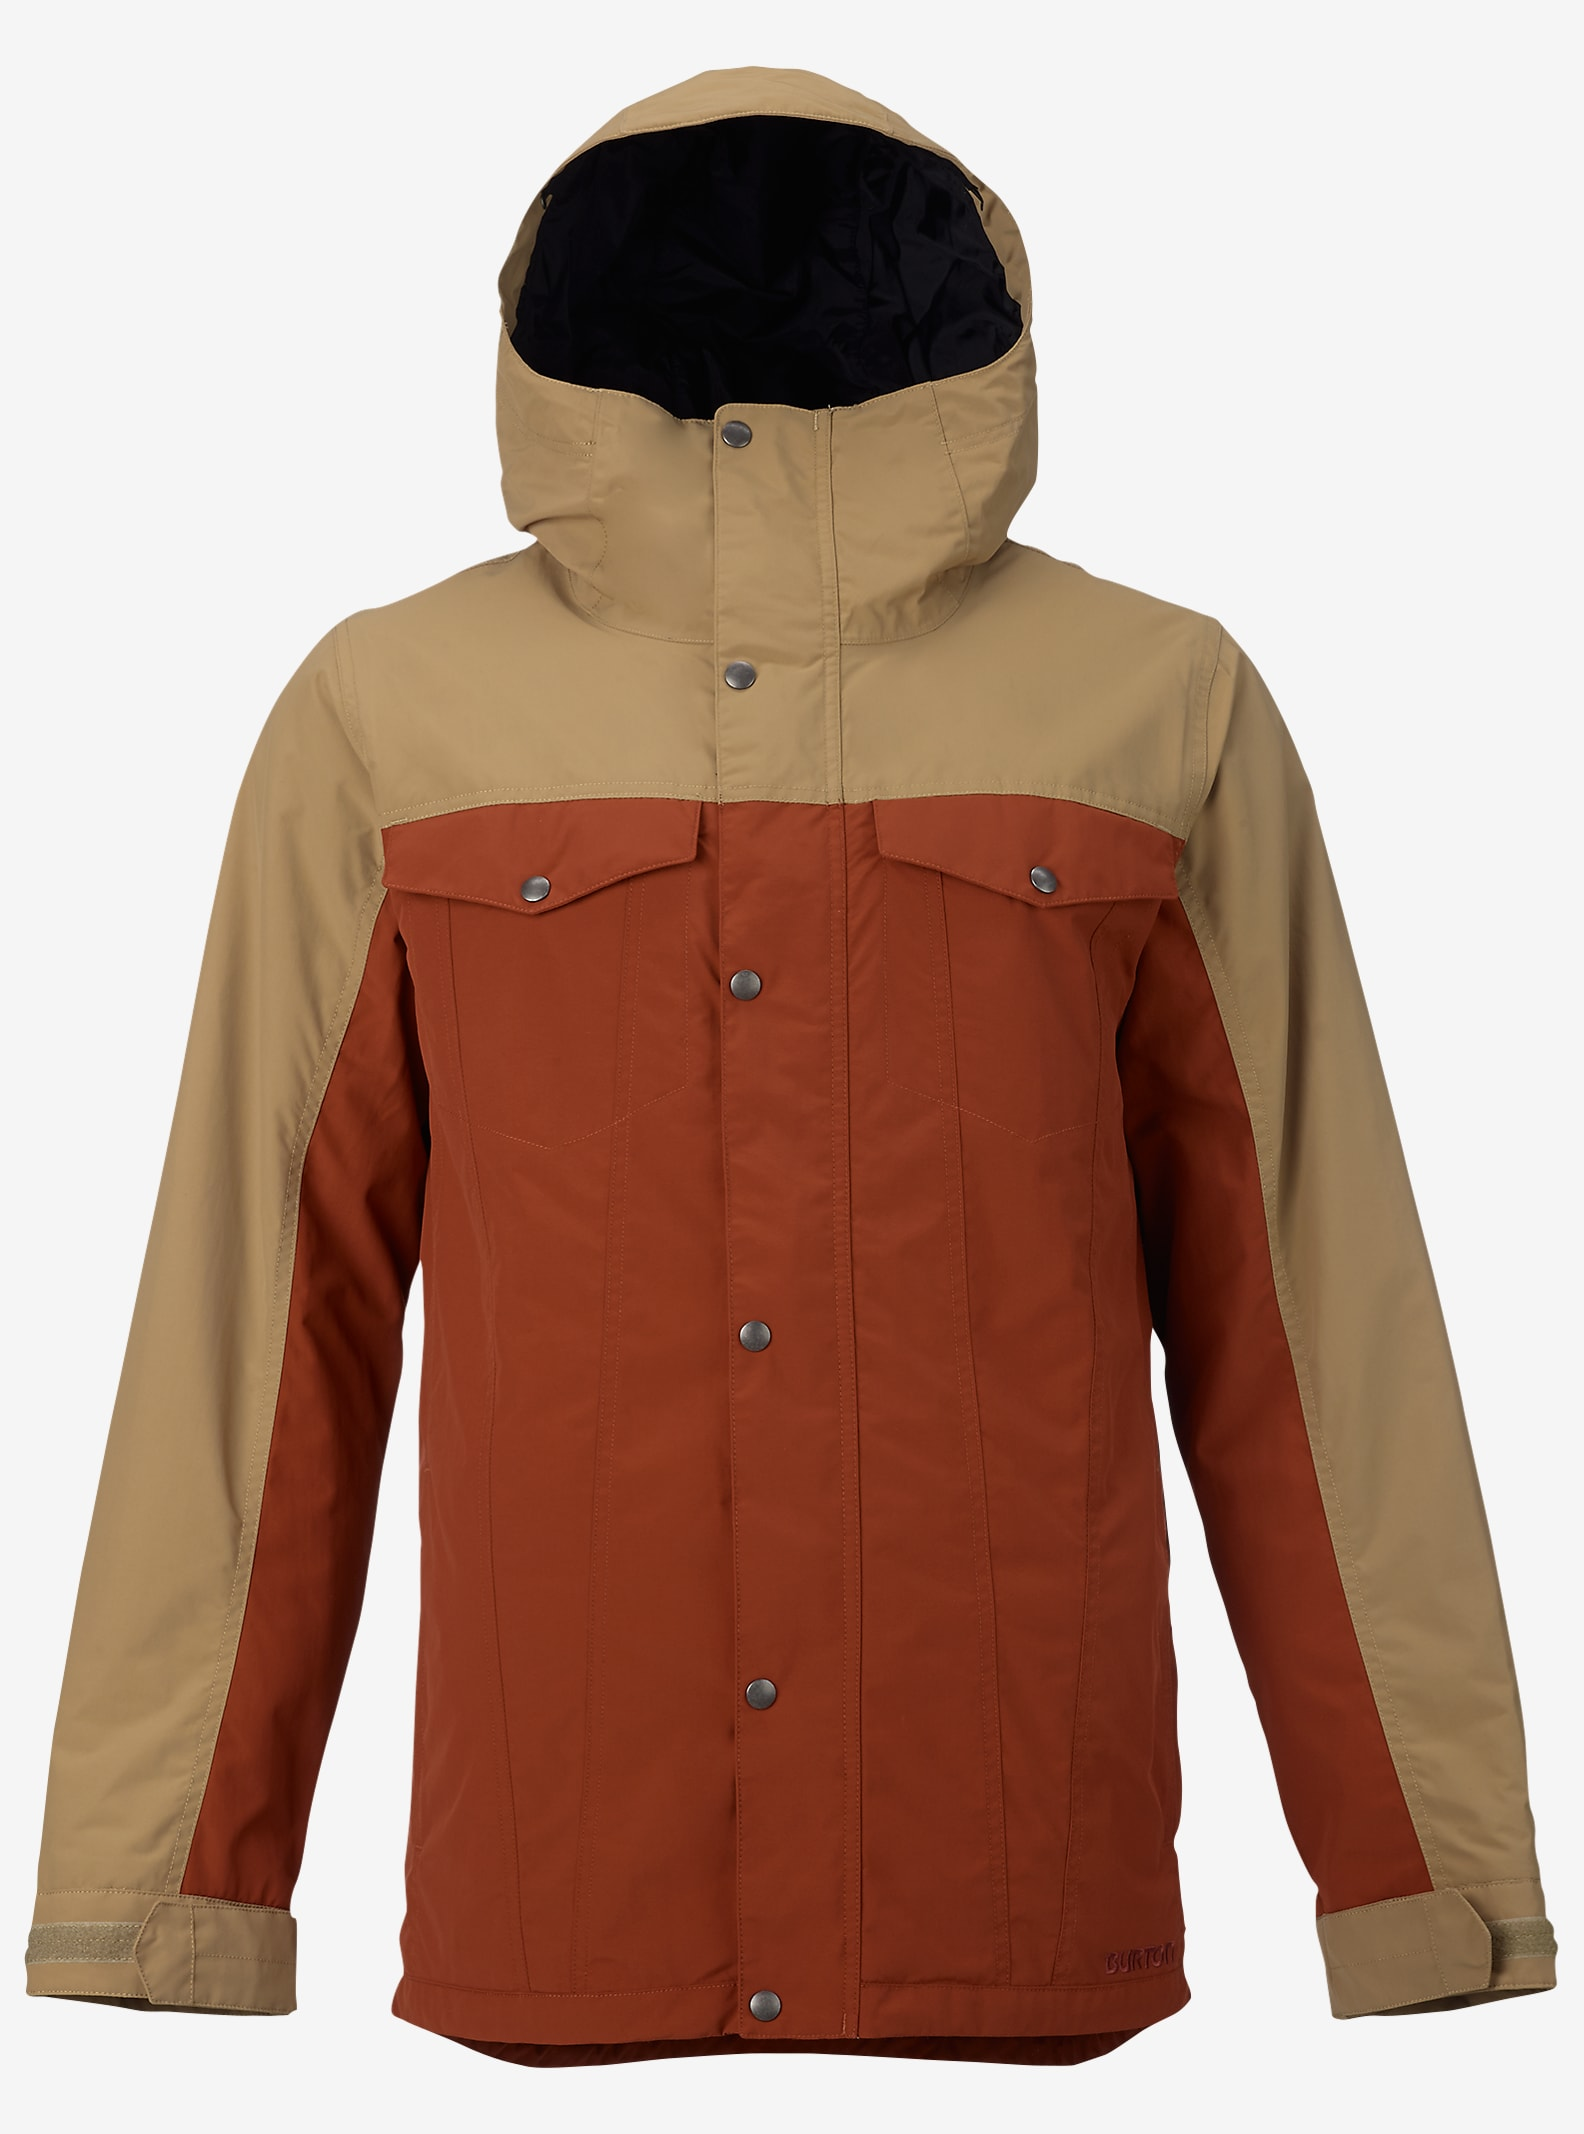 Burton TWC Greenlight Jacket shown in Kelp / Picante